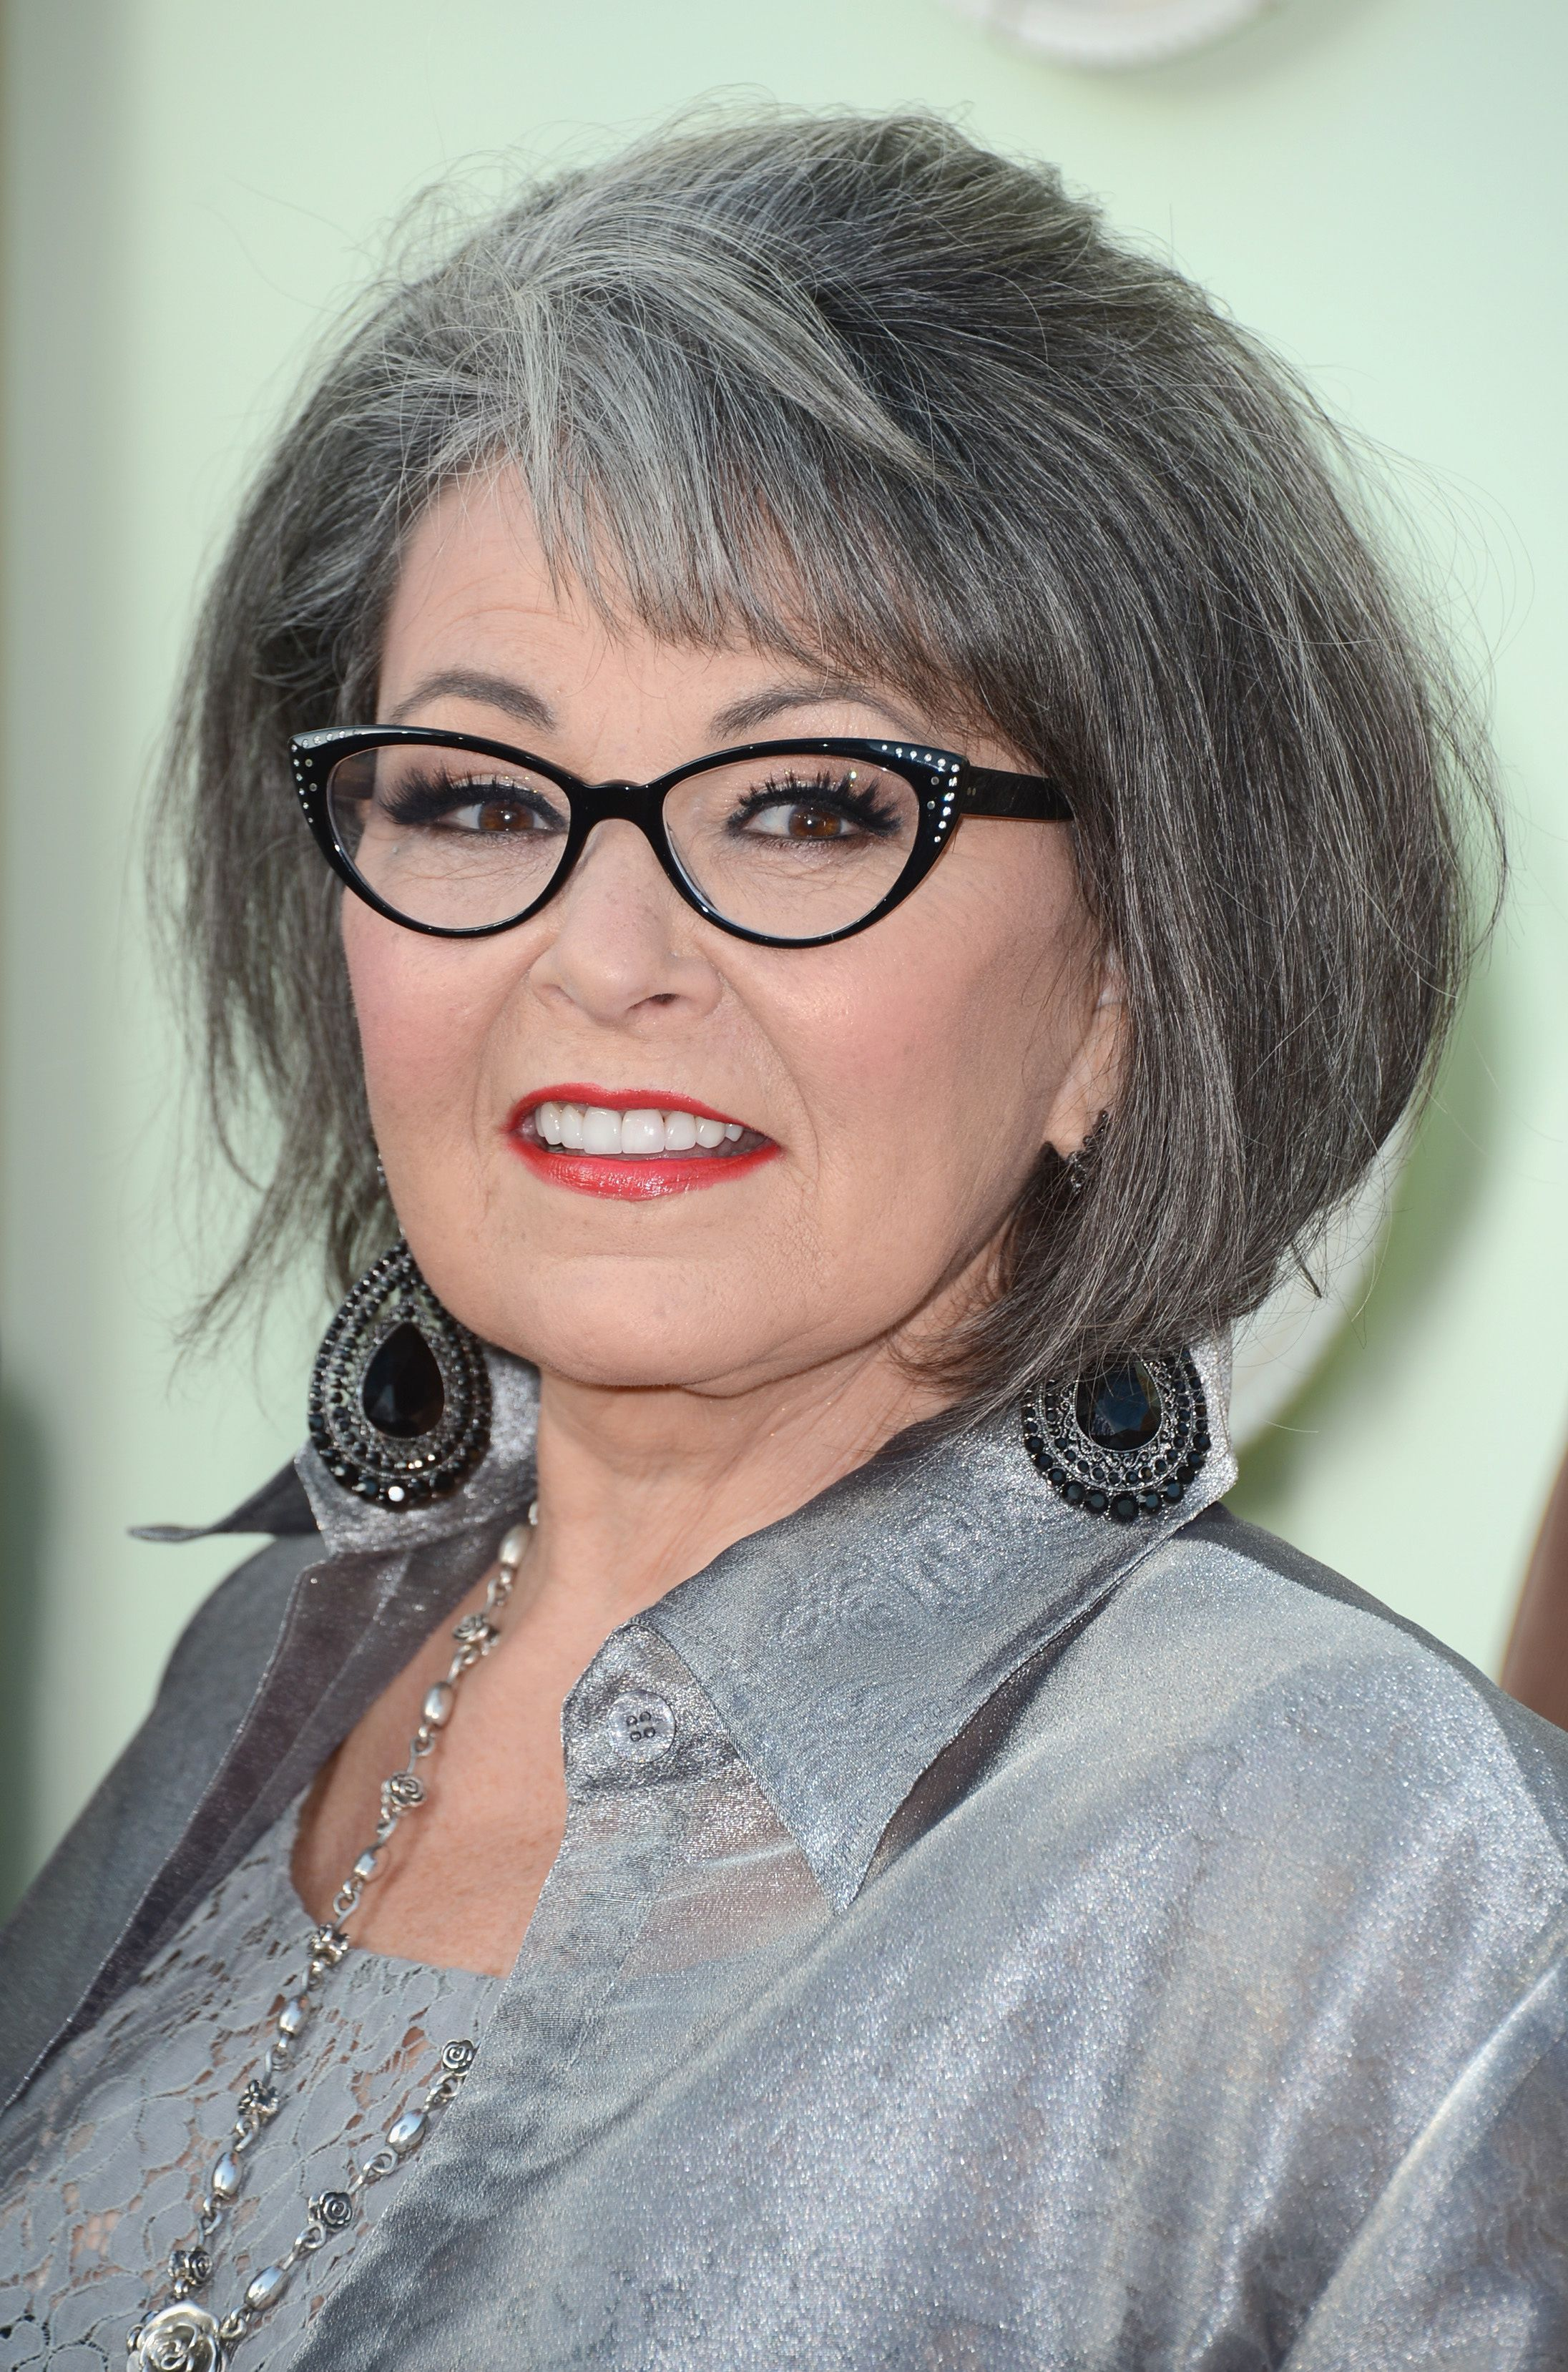 Hairstyles For Gray Hair Great Haircuts For Women In Their 60s Womenshaircuts2018 Hair Styles Grey Hair Color Older Women Hairstyles